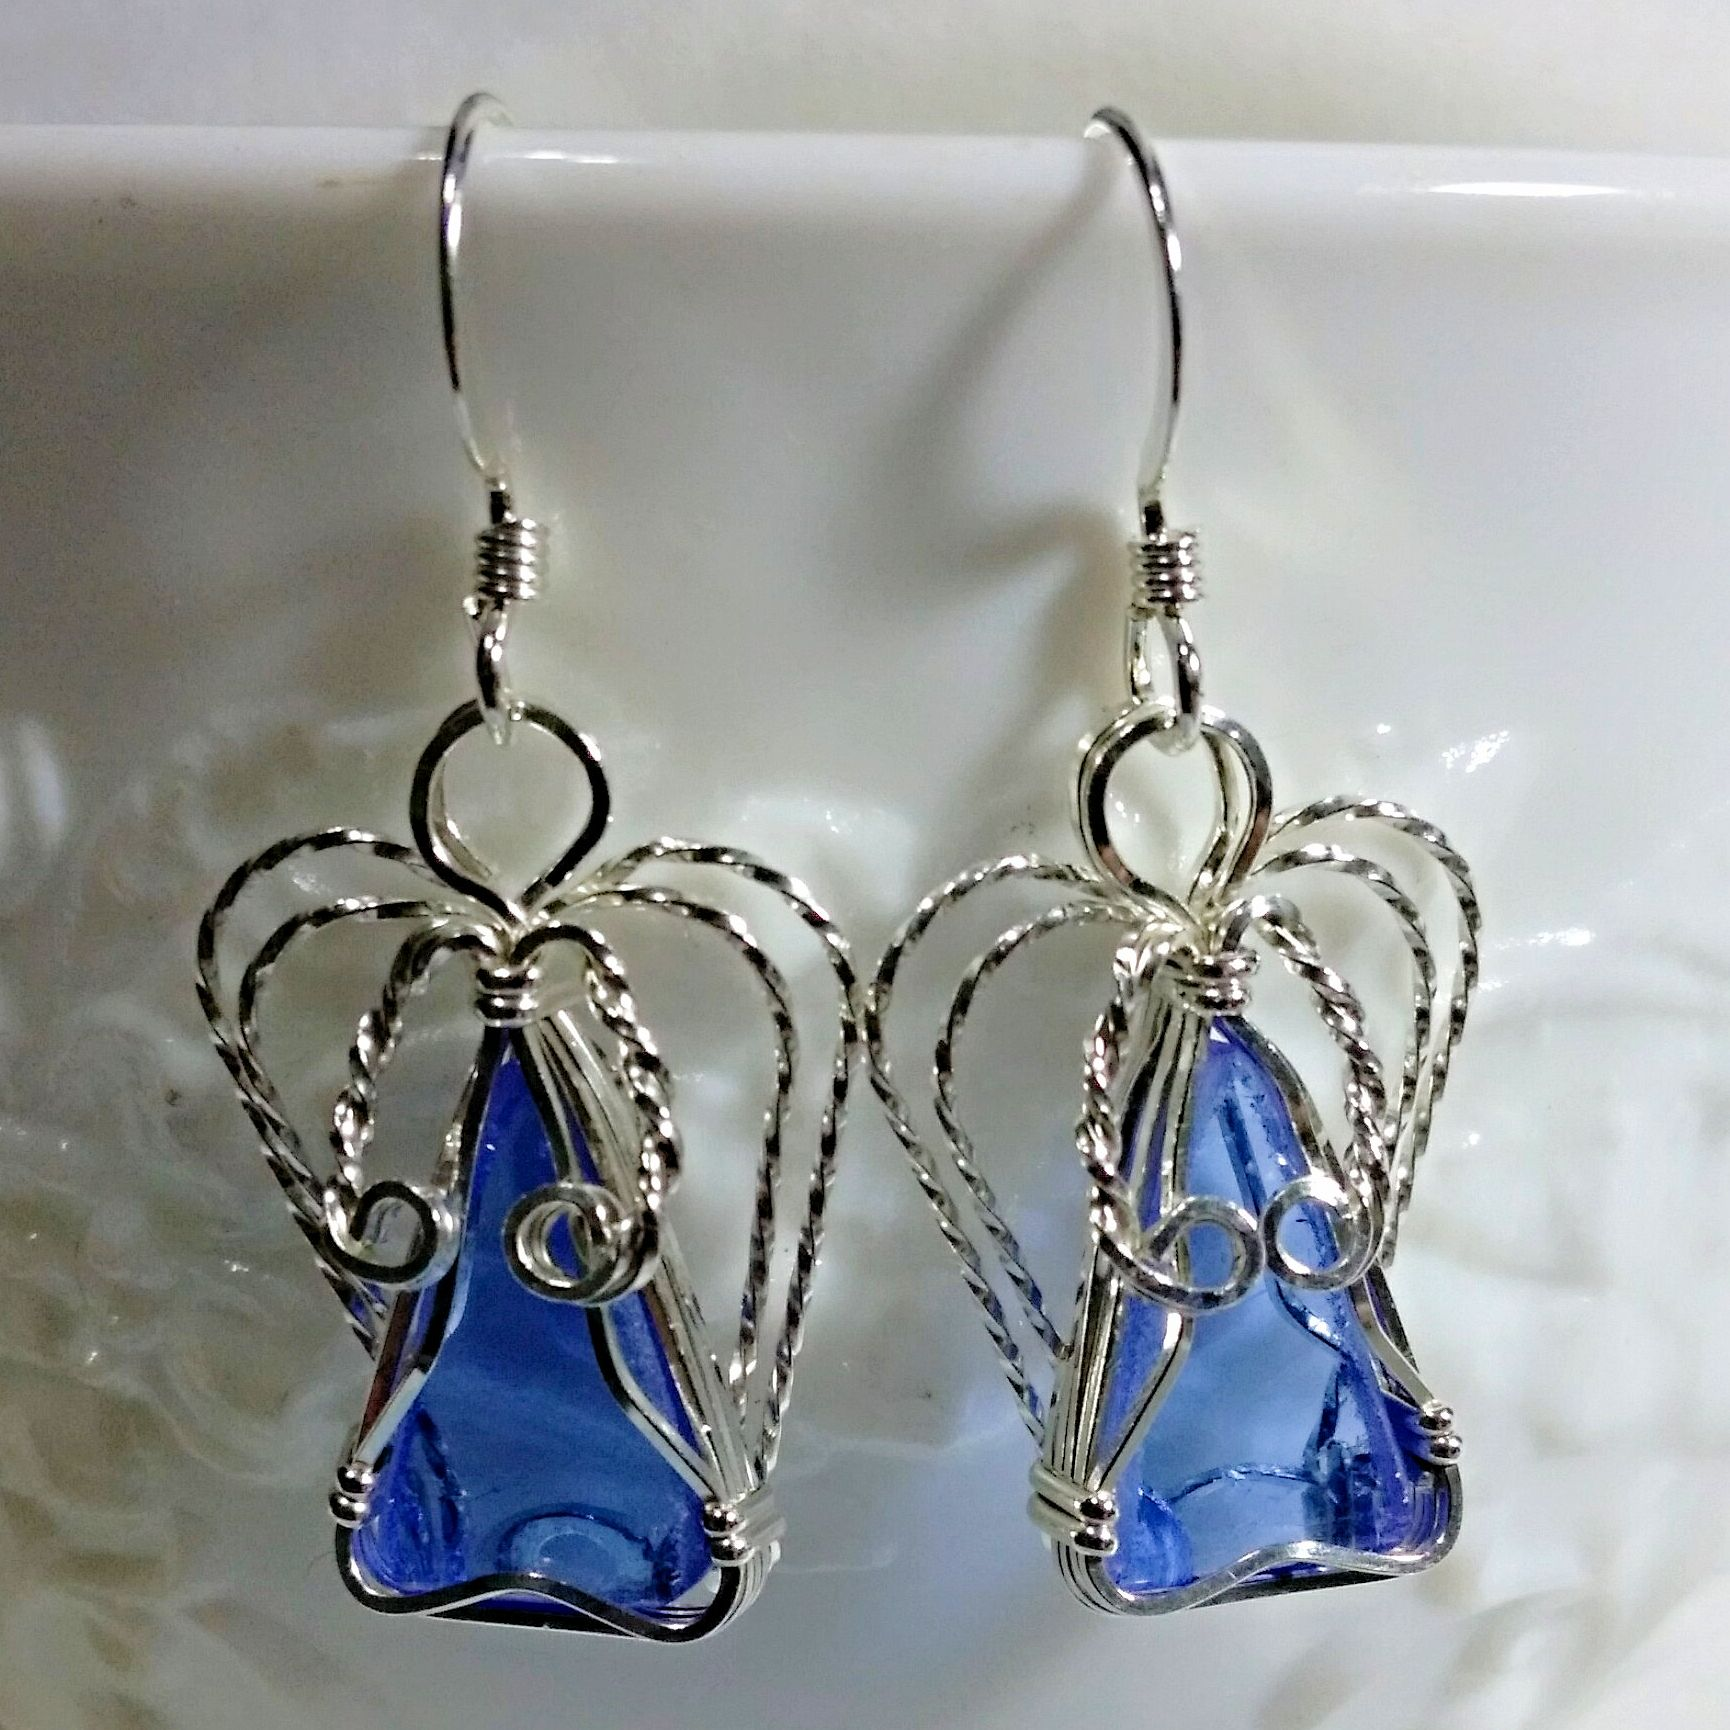 earrings blue cornflowerbuttondropearrings cobalt beach cornflower mountain seaglass short drop